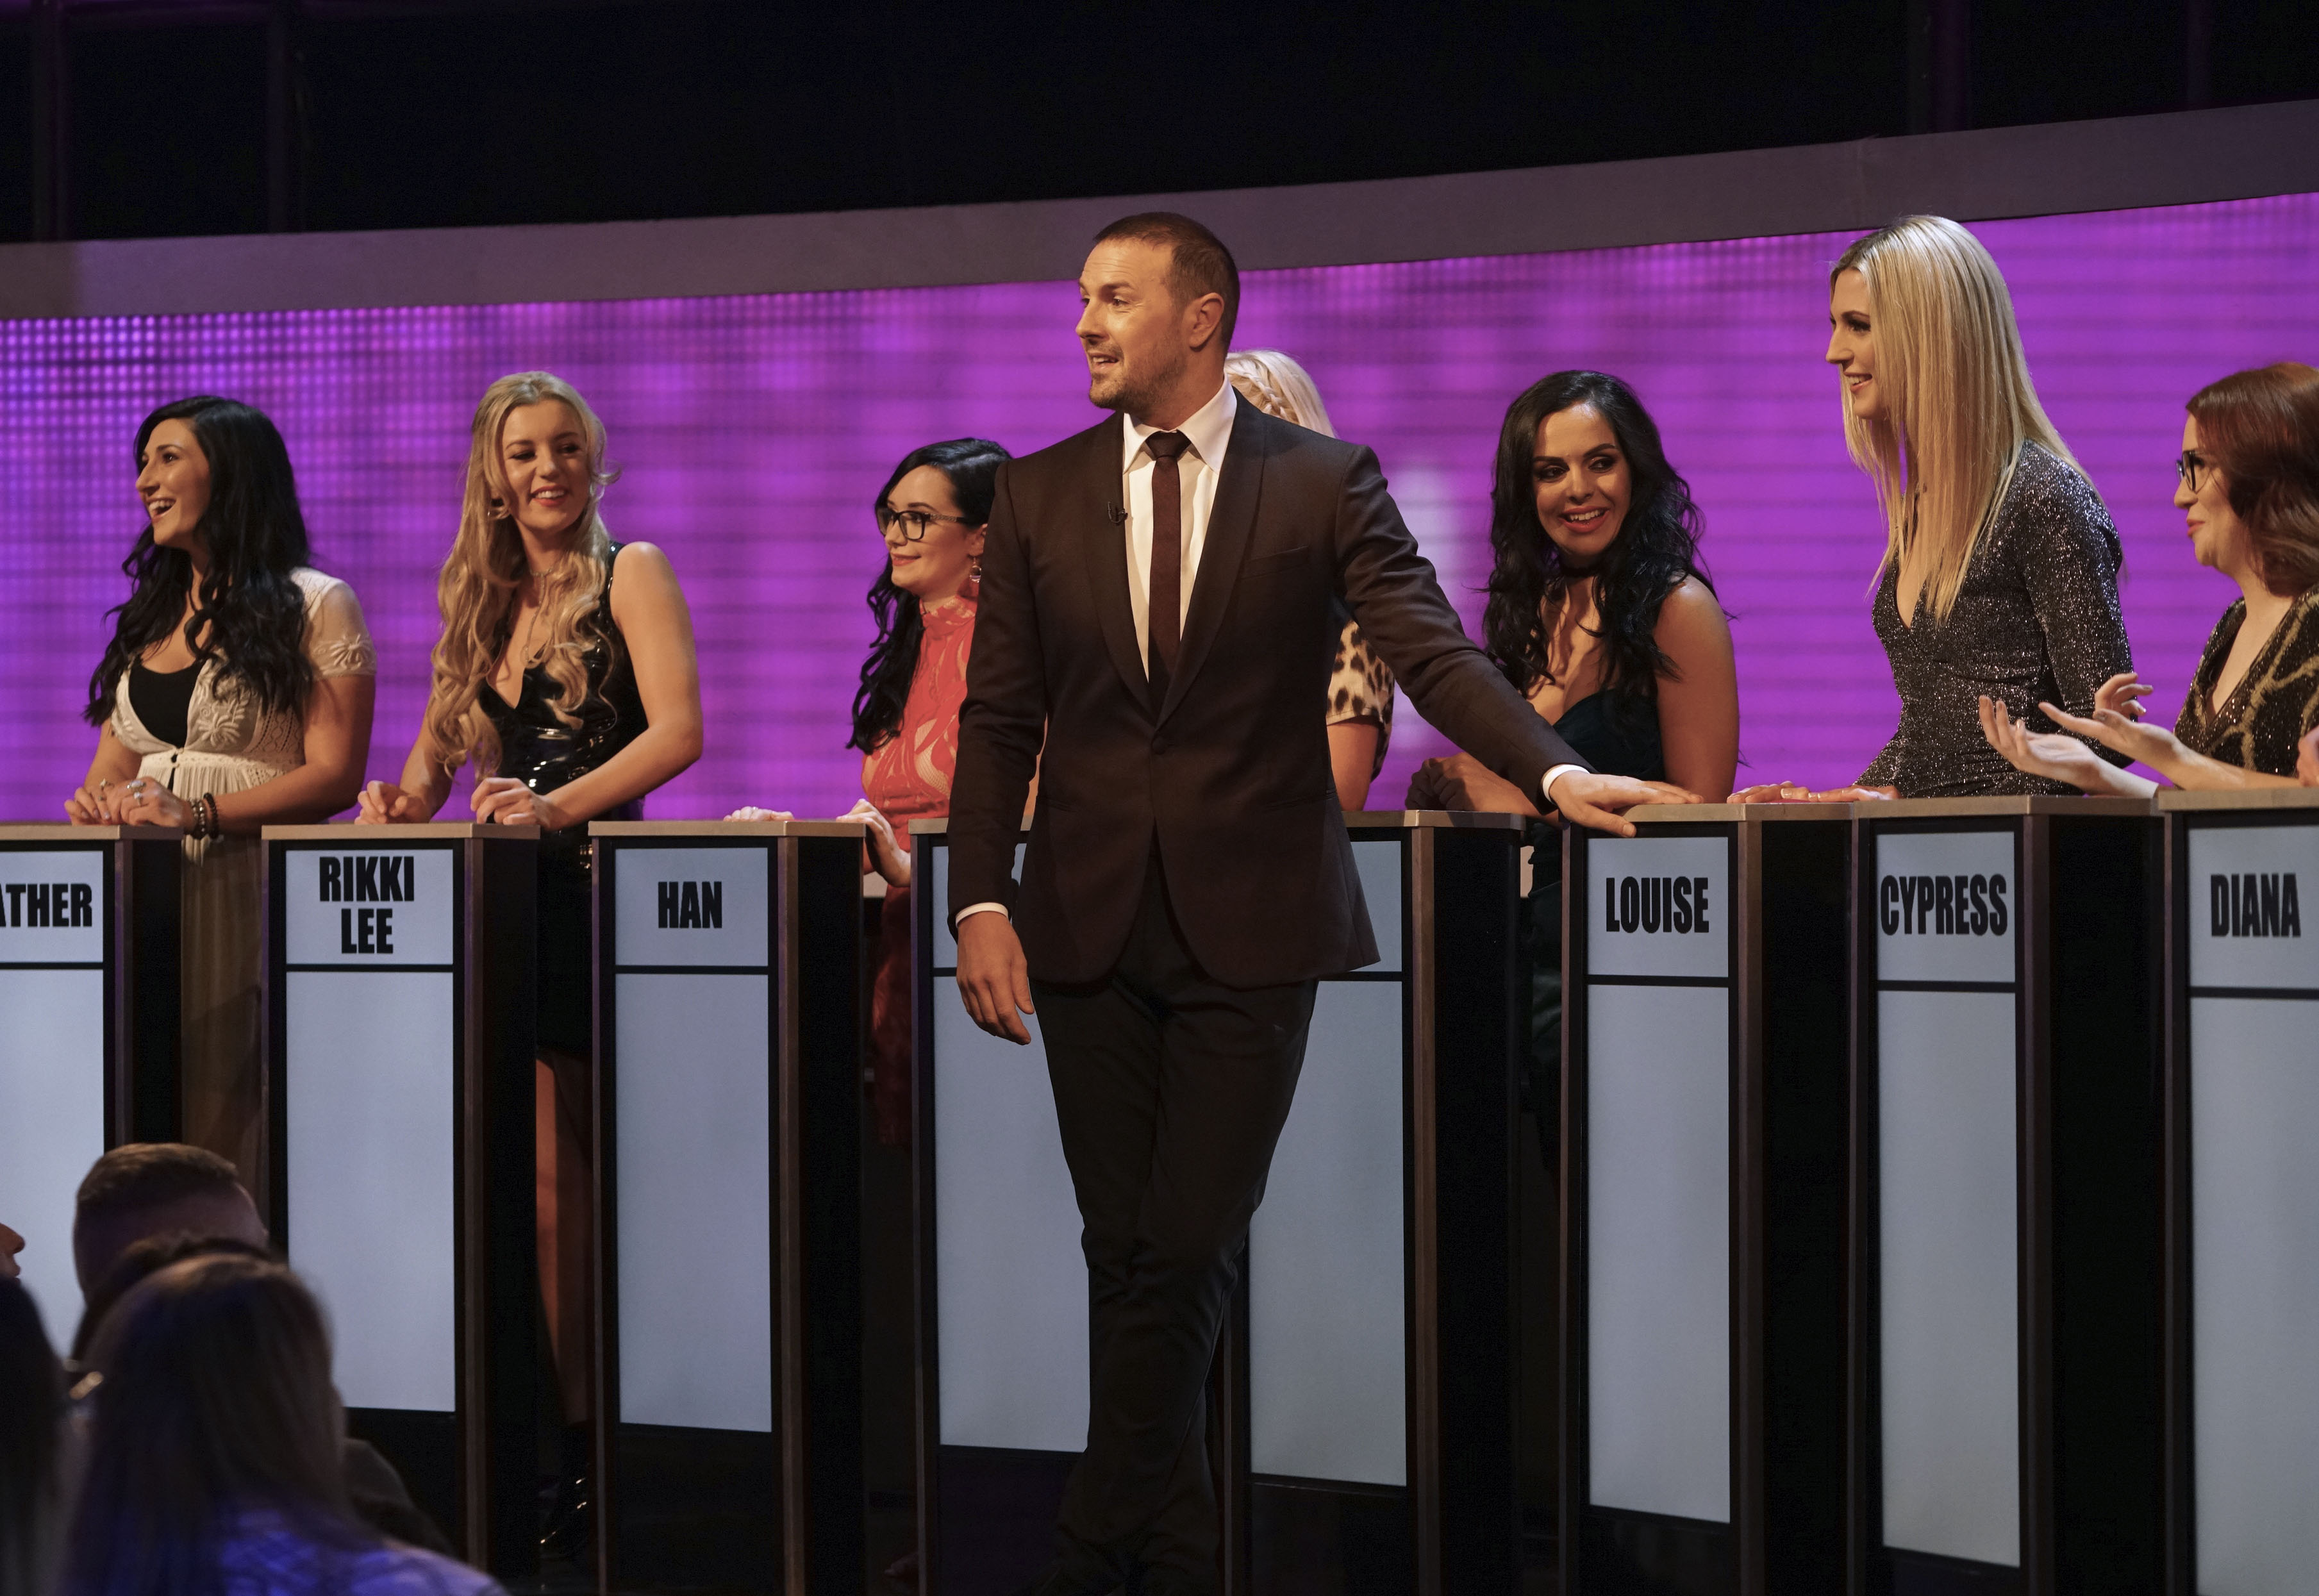 Take Me Out - what time is it on TV? Episode 10 Series 8